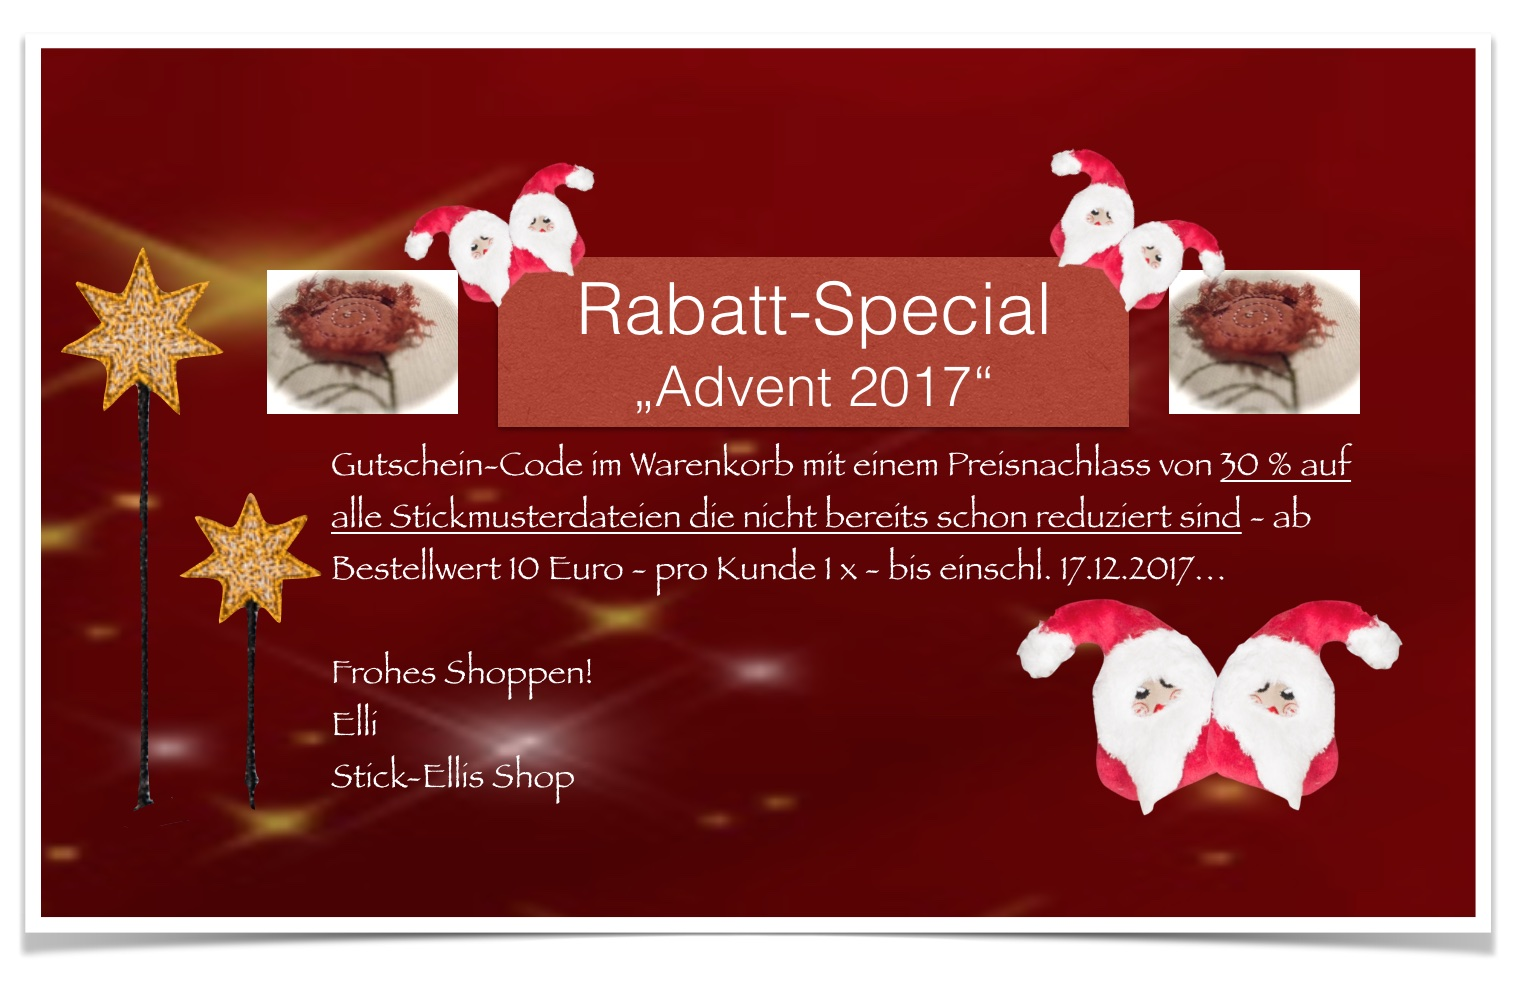 Rabatt-Special Advent17